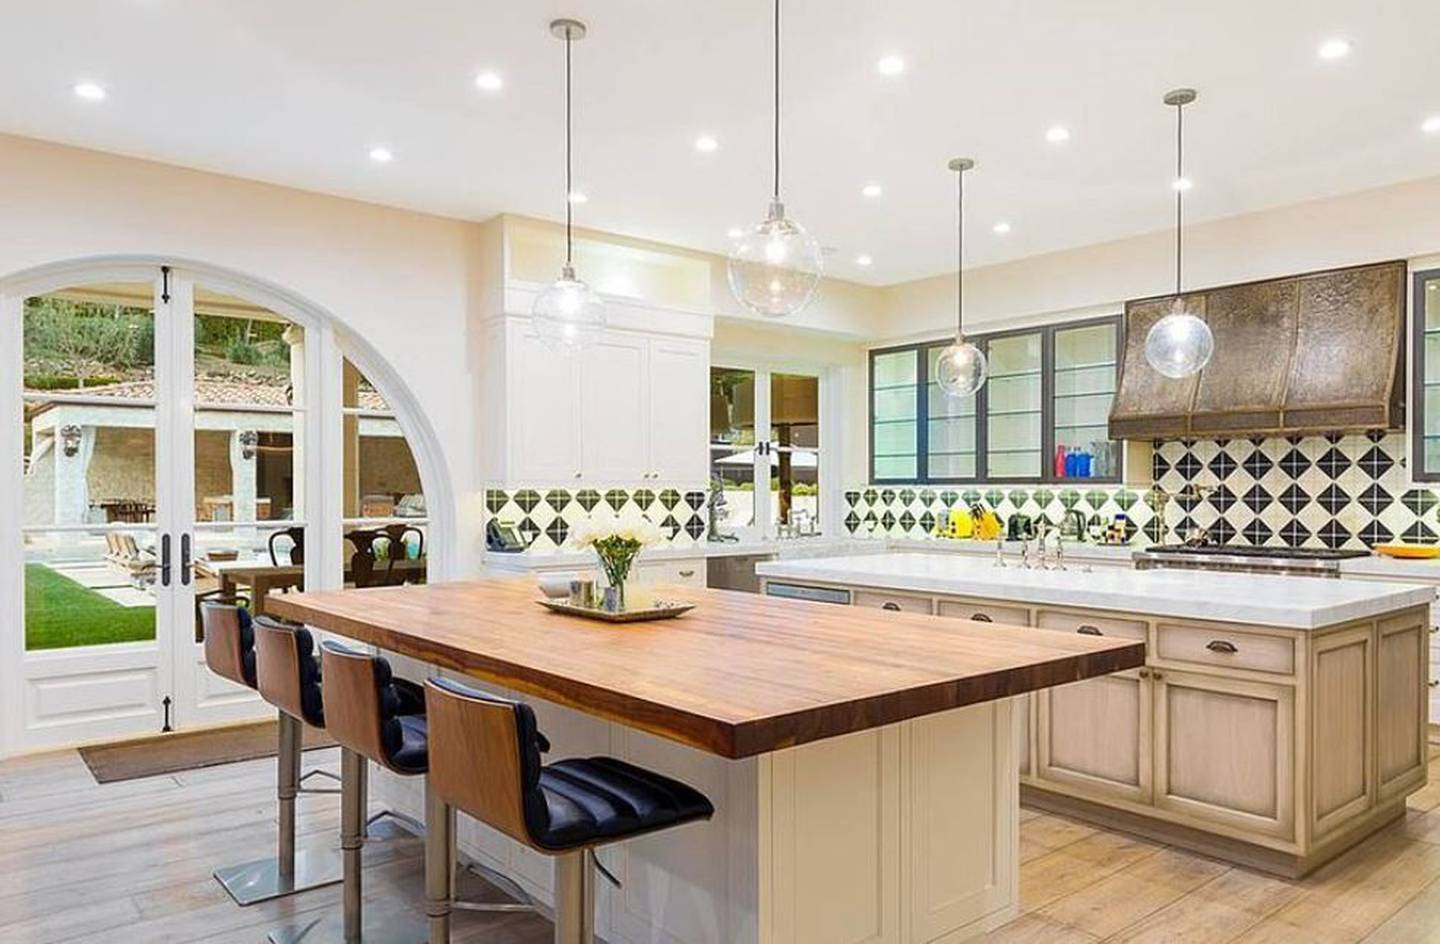 The couple can perfect roasting chickens in this large kitchen. Photo / VRBO/ Planet photos